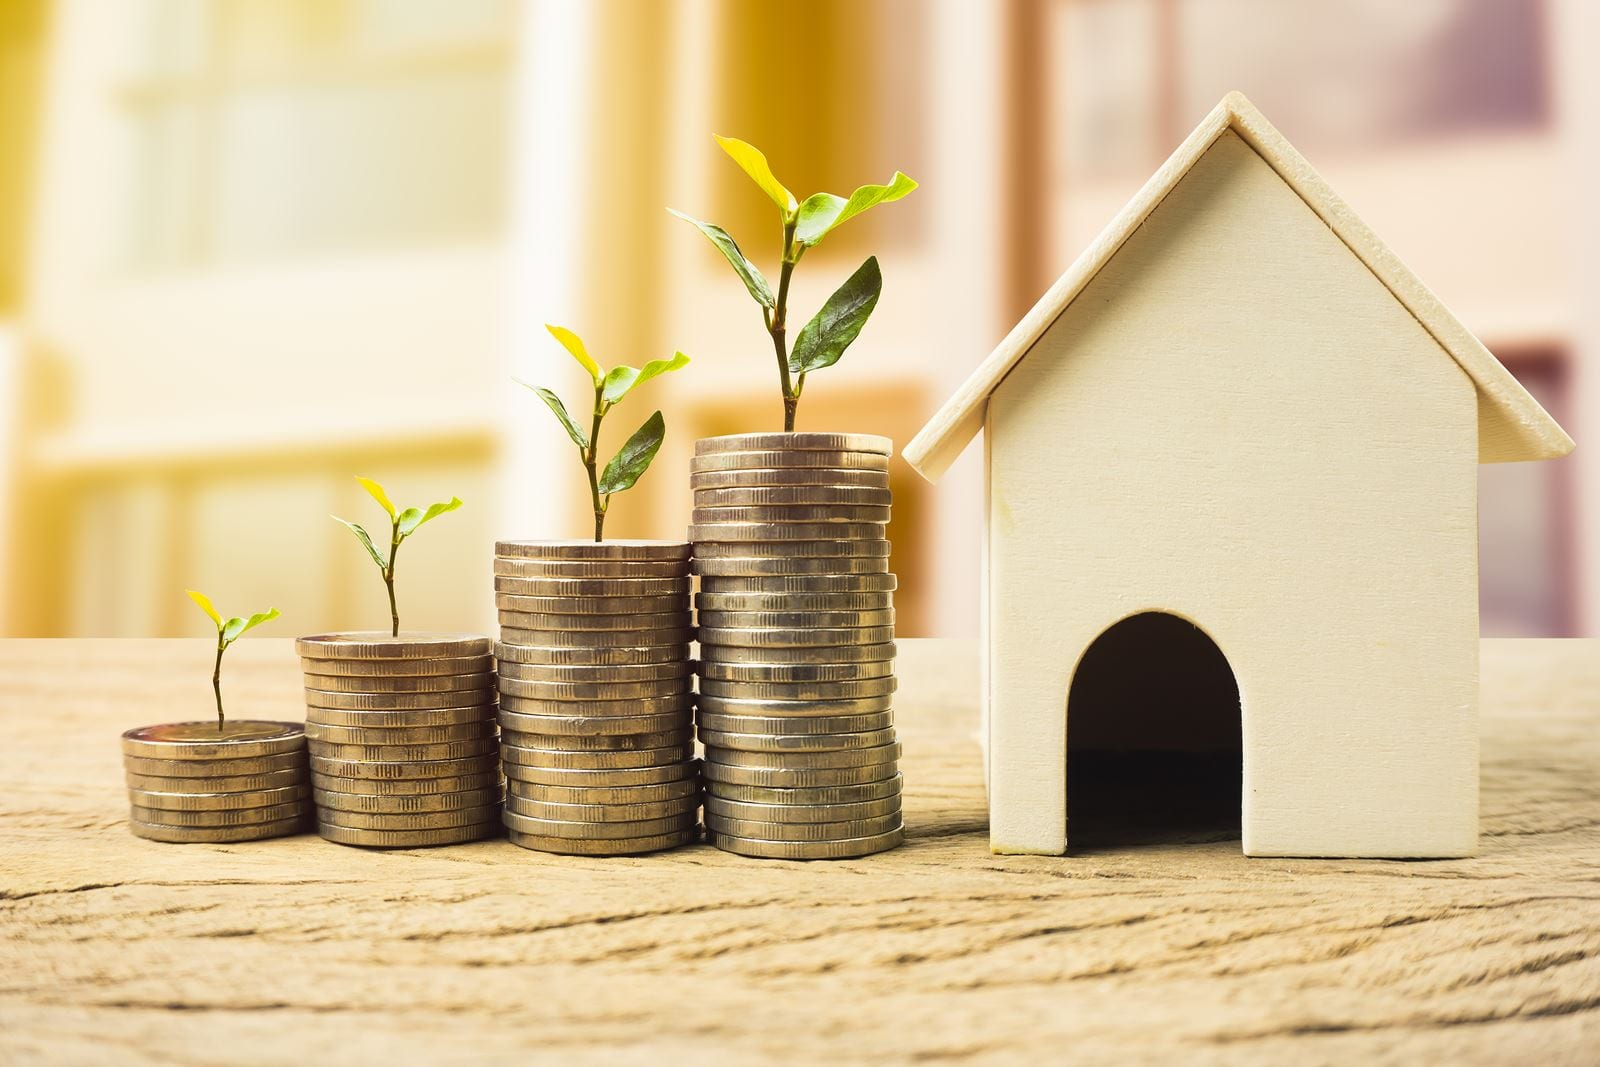 It's Great To Learn About Real Estate Investing